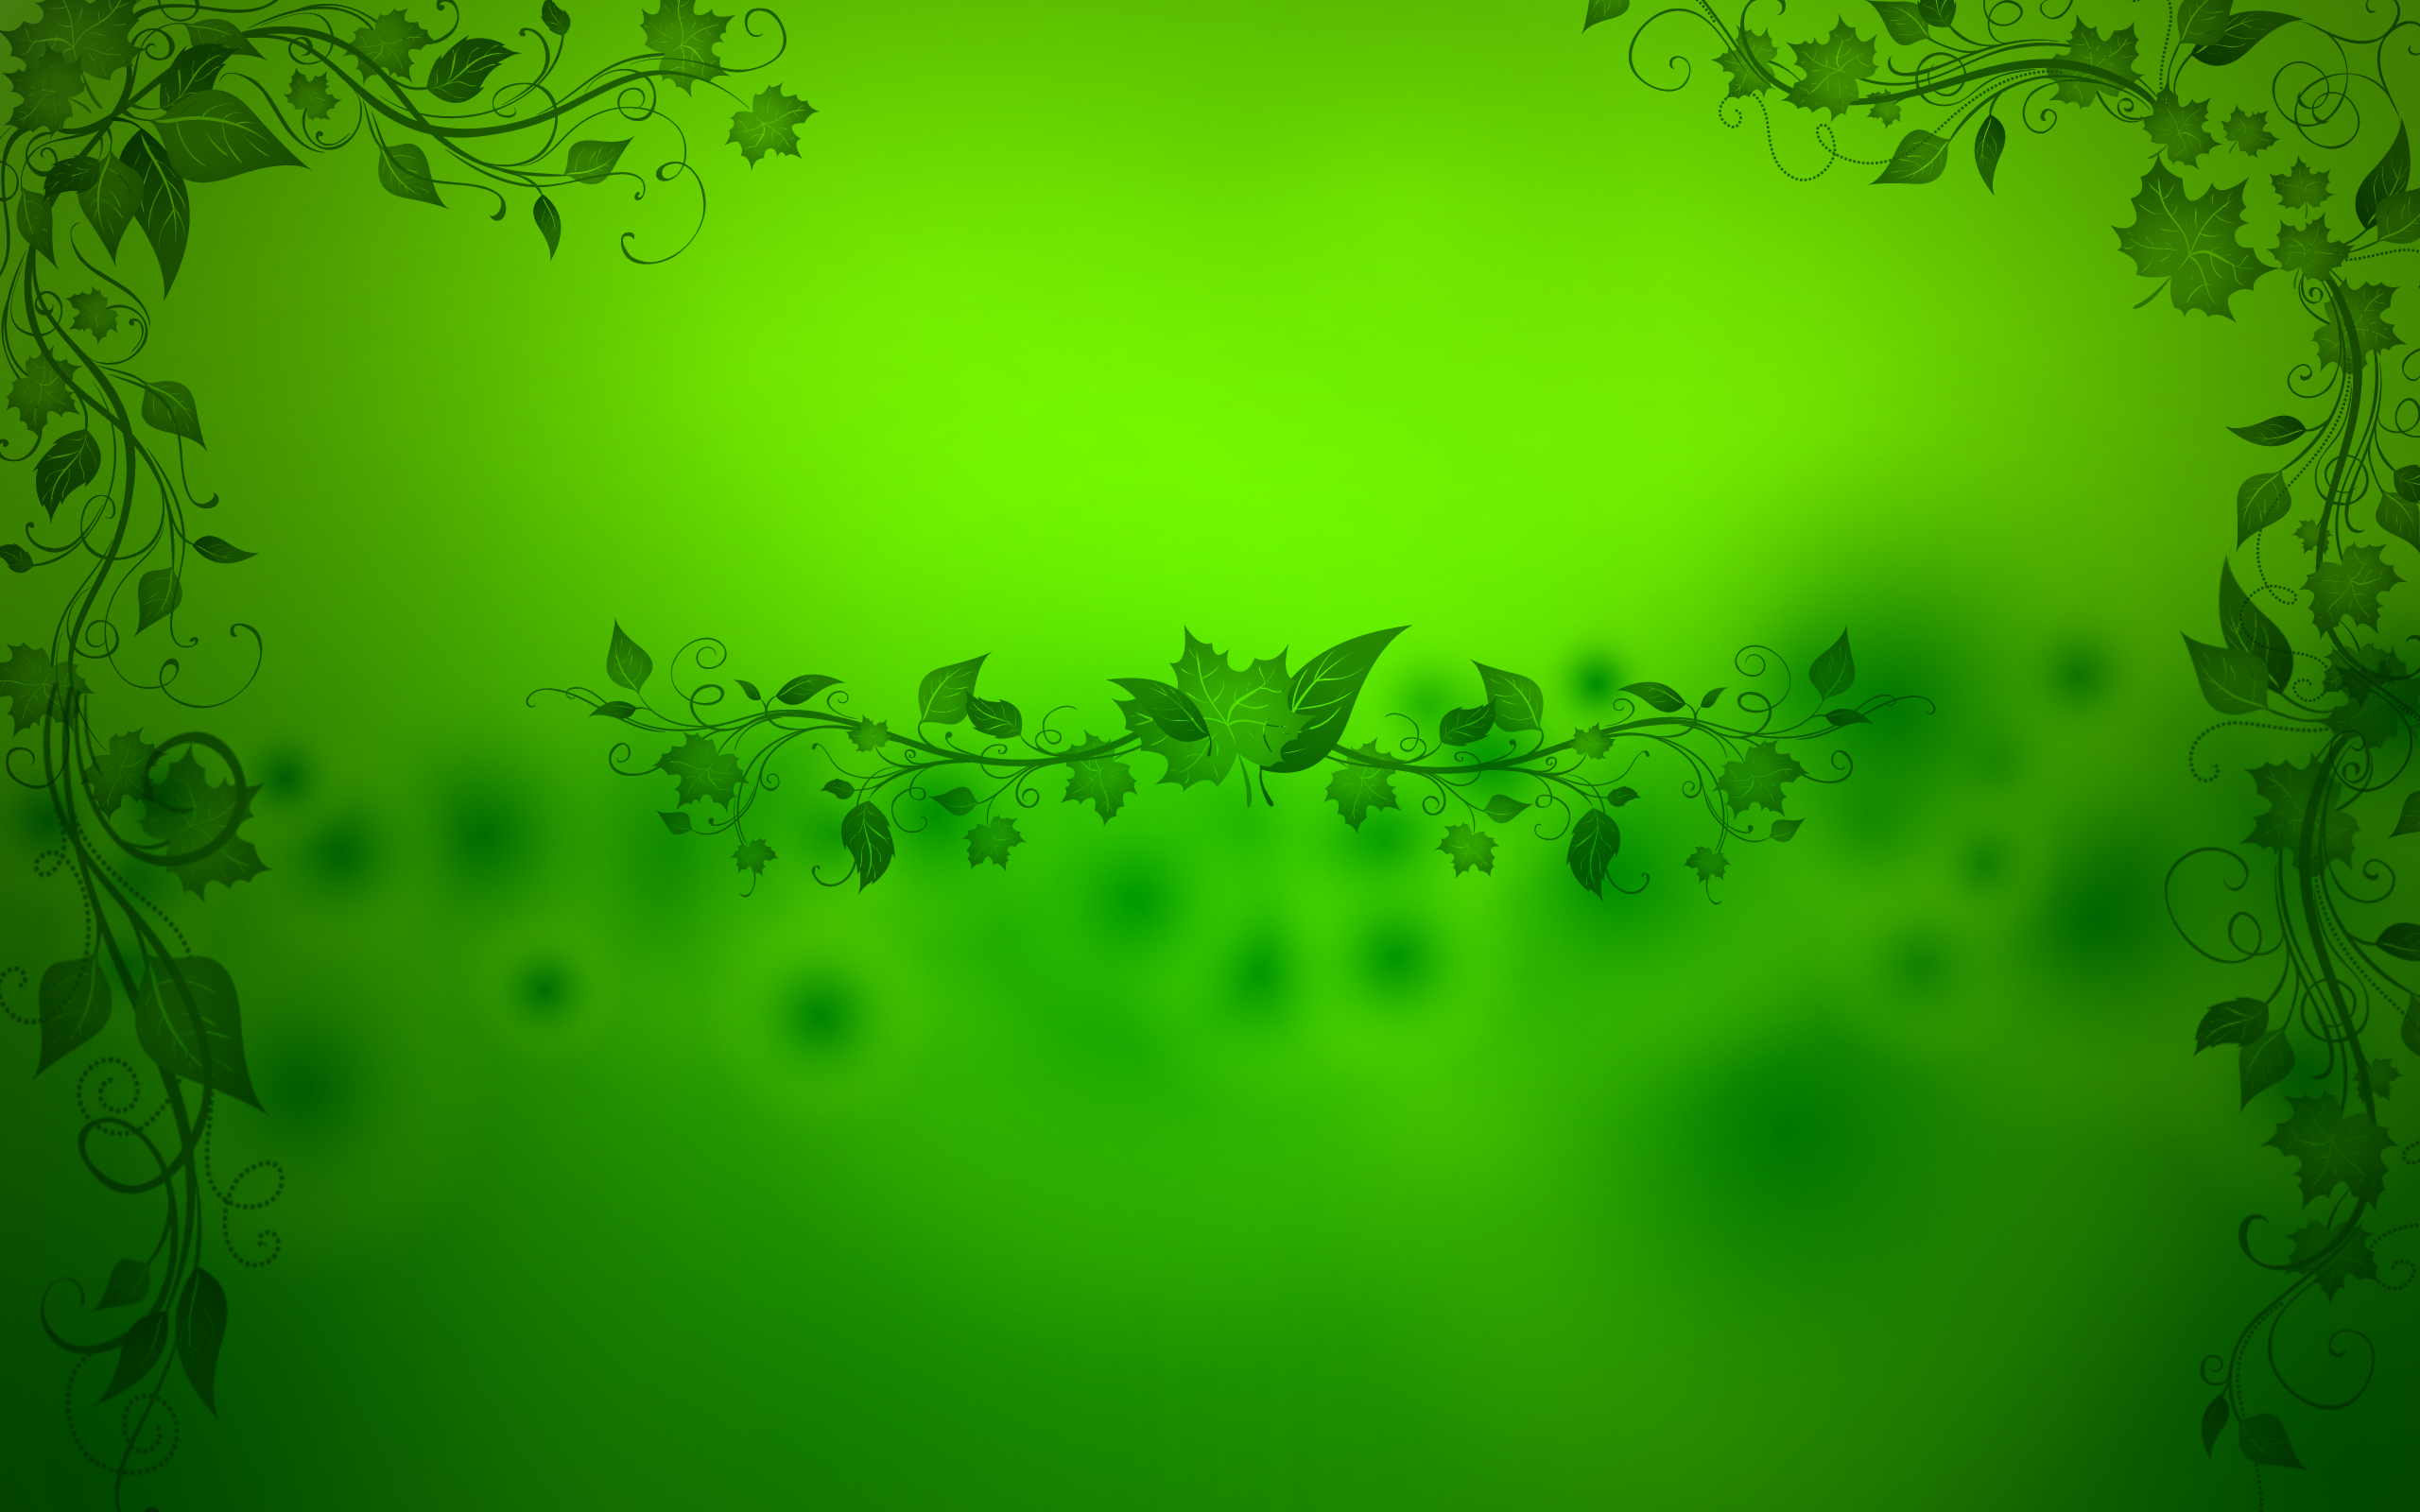 2560x1600 px Green Widescreen Image | Best Pictures, v.64